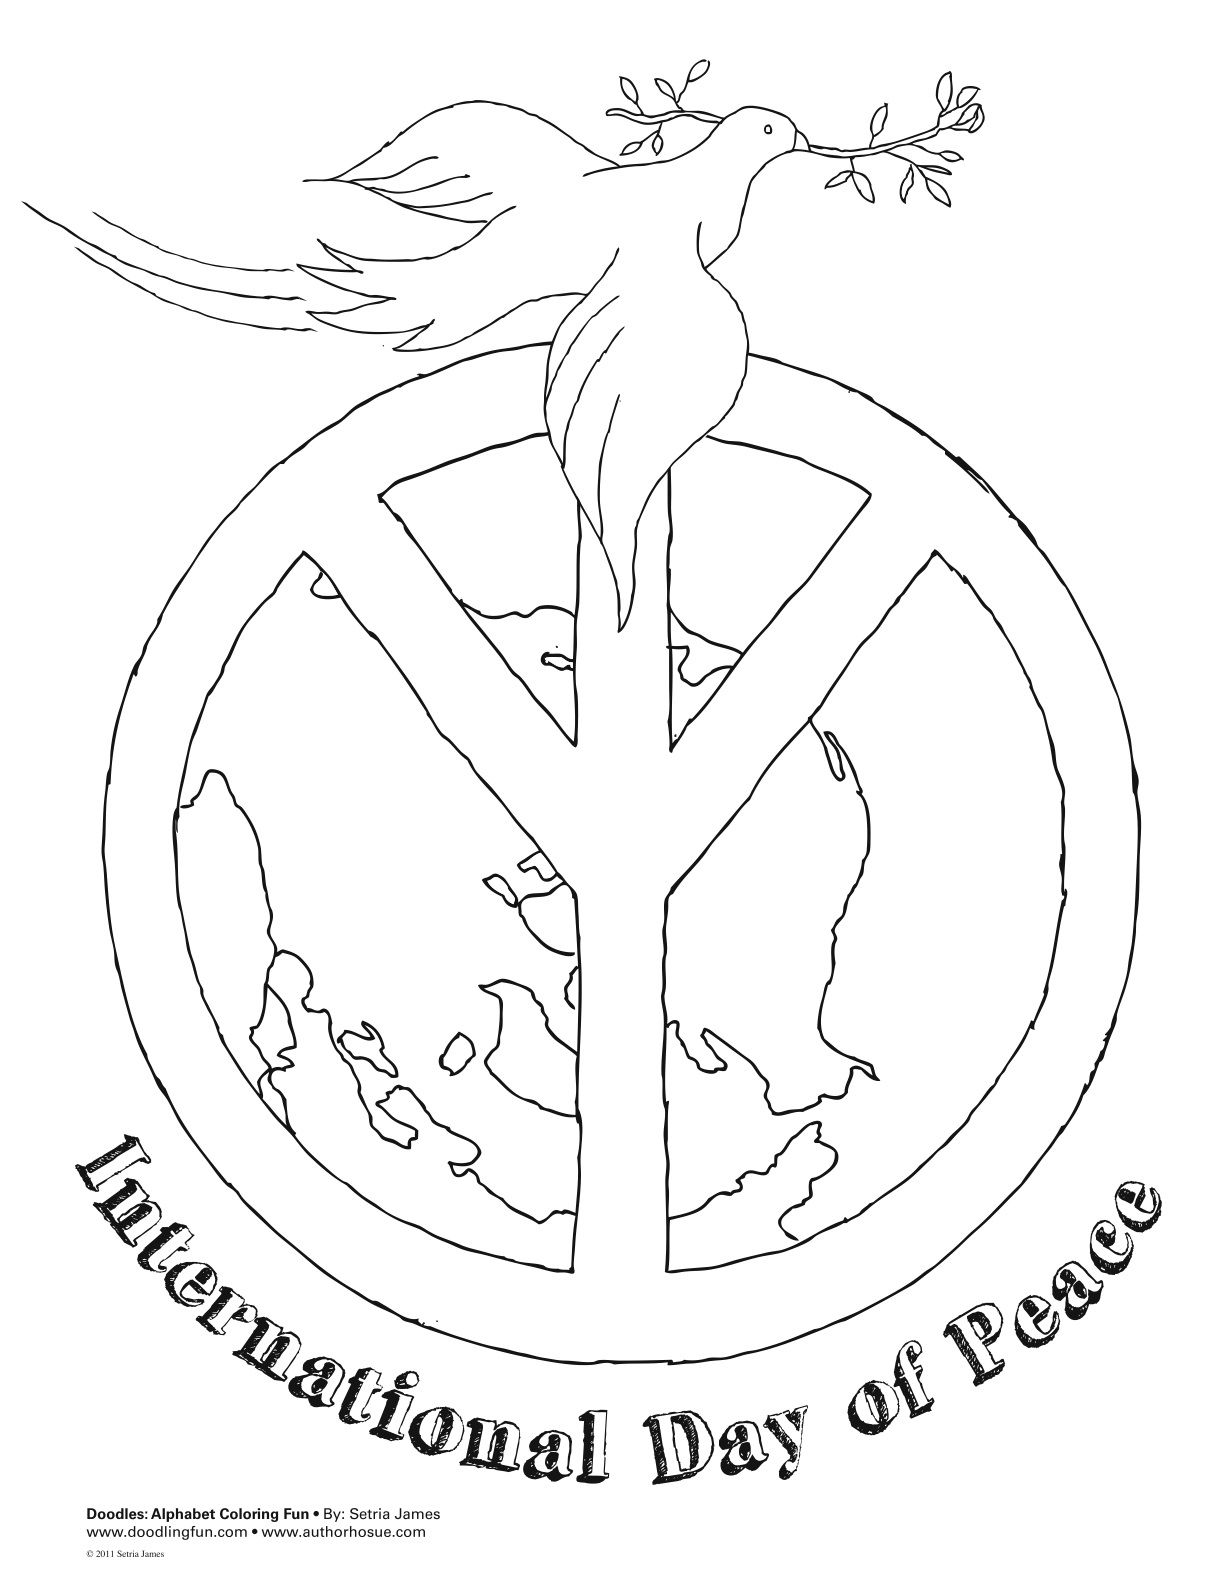 international day of peace coloring page dia de la pau international day of peace coloring page